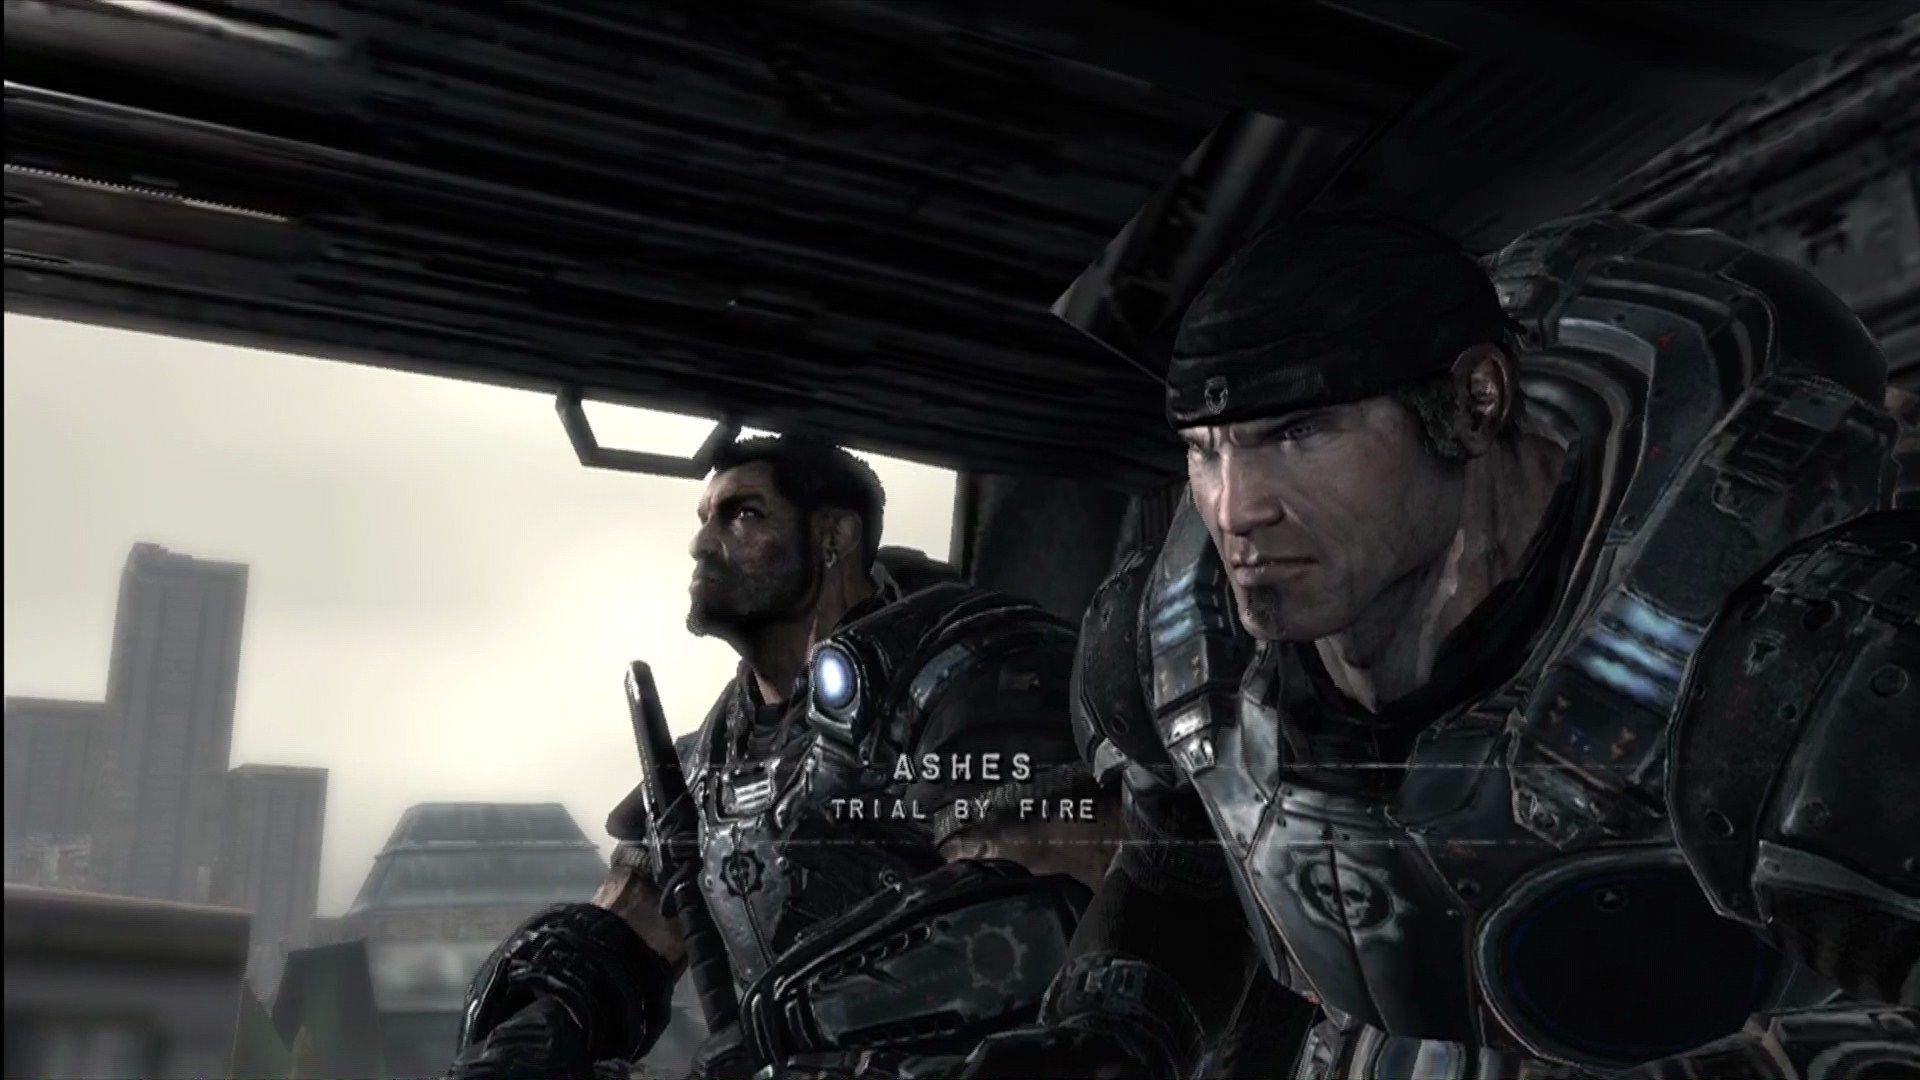 Gears of War Xbox 360 Marcus Fenix, freshly out of prison